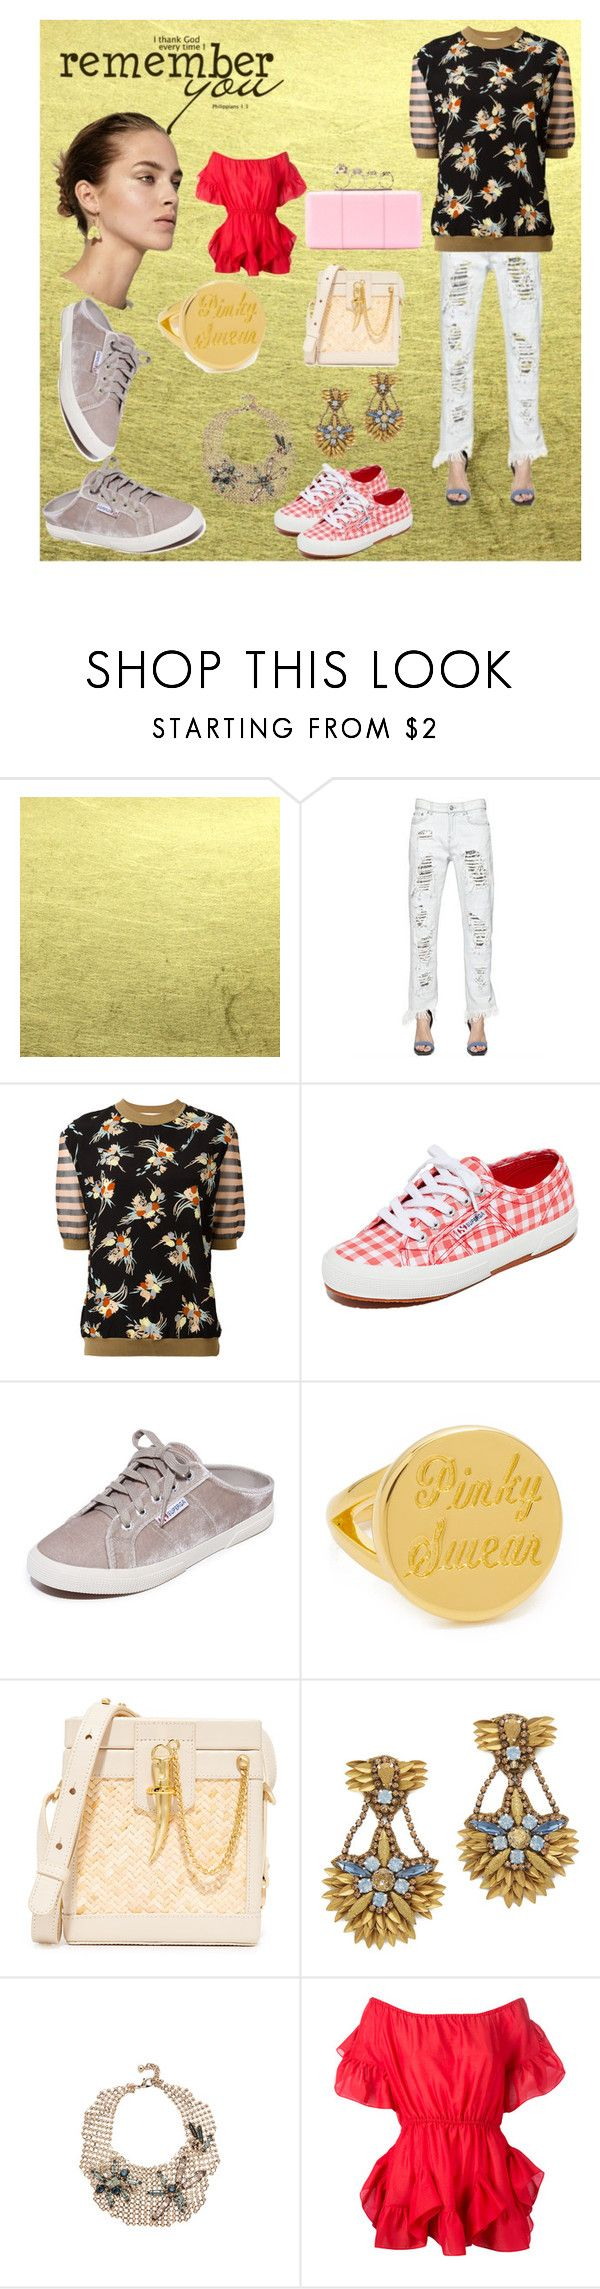 """""""Remember you"""" by denisee-denisee ❤ liked on Polyvore featuring Versus, Marni, Superga, Elizabeth and James, SANCIA, Deepa Gurnani, Lulu Frost, Goen.J and Alexander McQueen"""